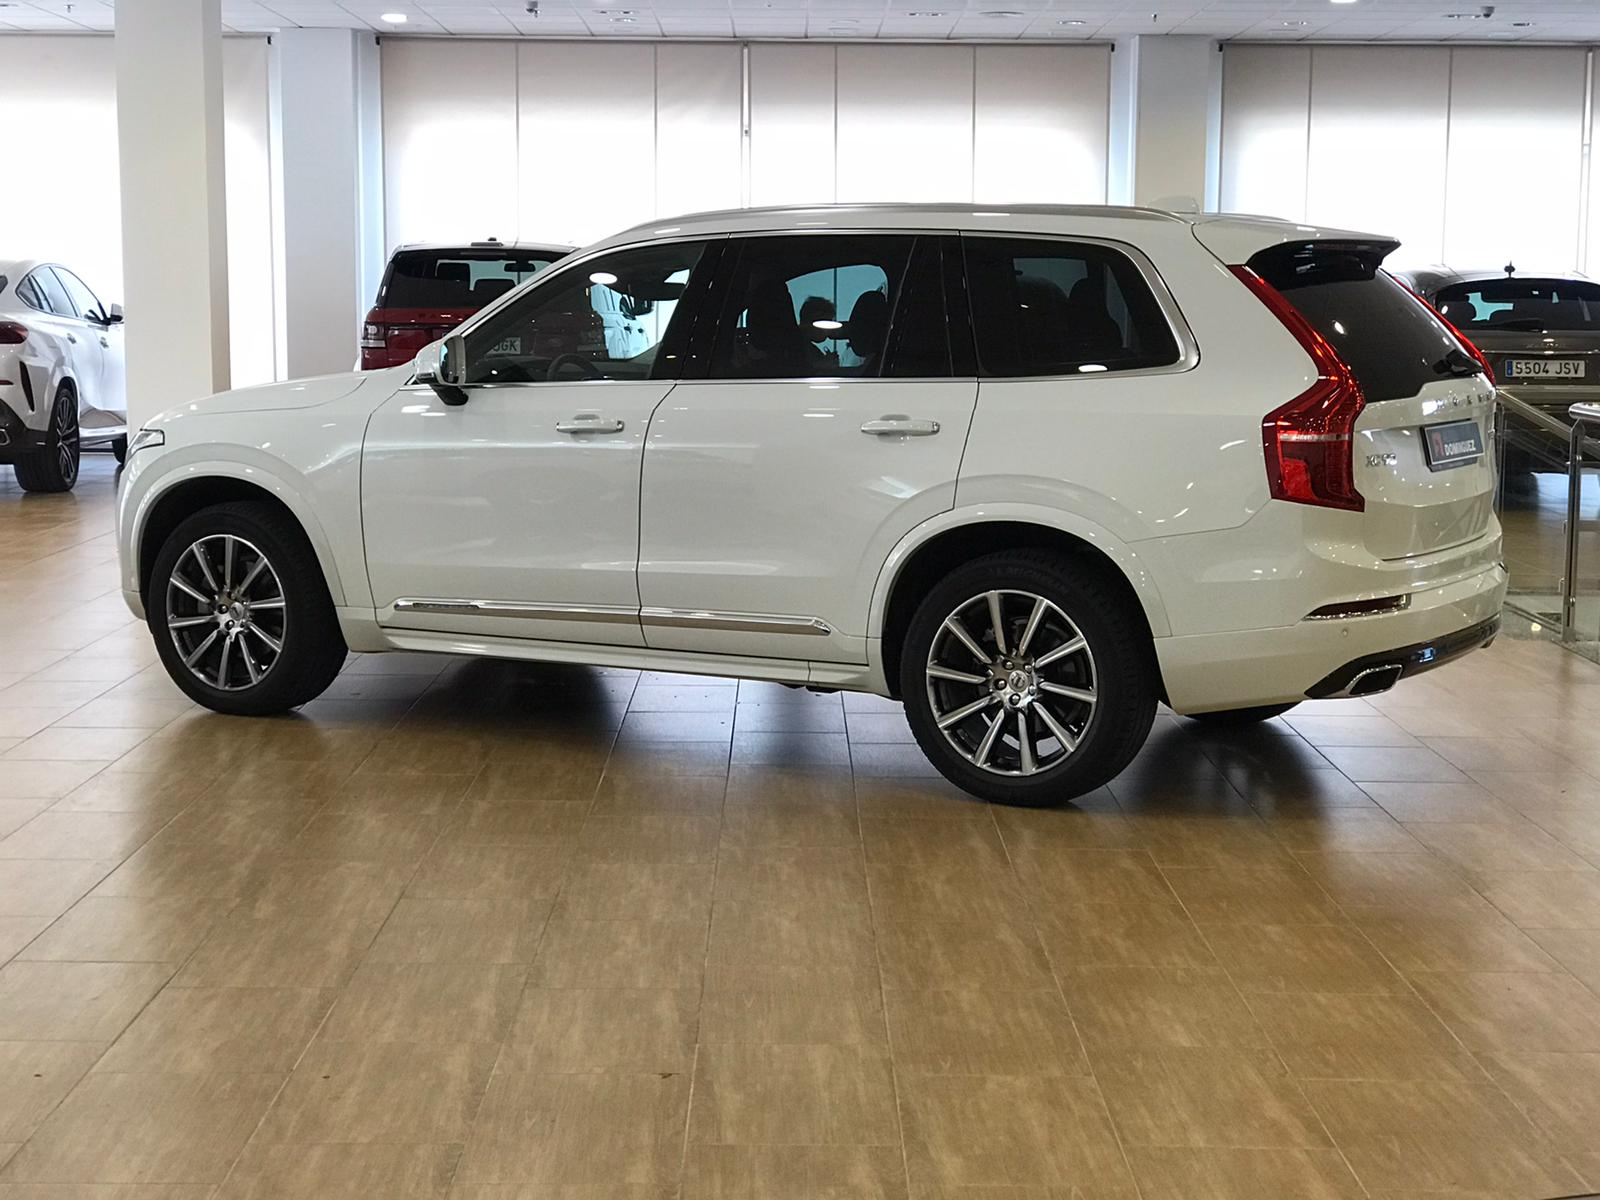 VOLVO XC90 2.0 D5 AWD INSCRIPTION 7 PLAZAS AUTO 235 CV